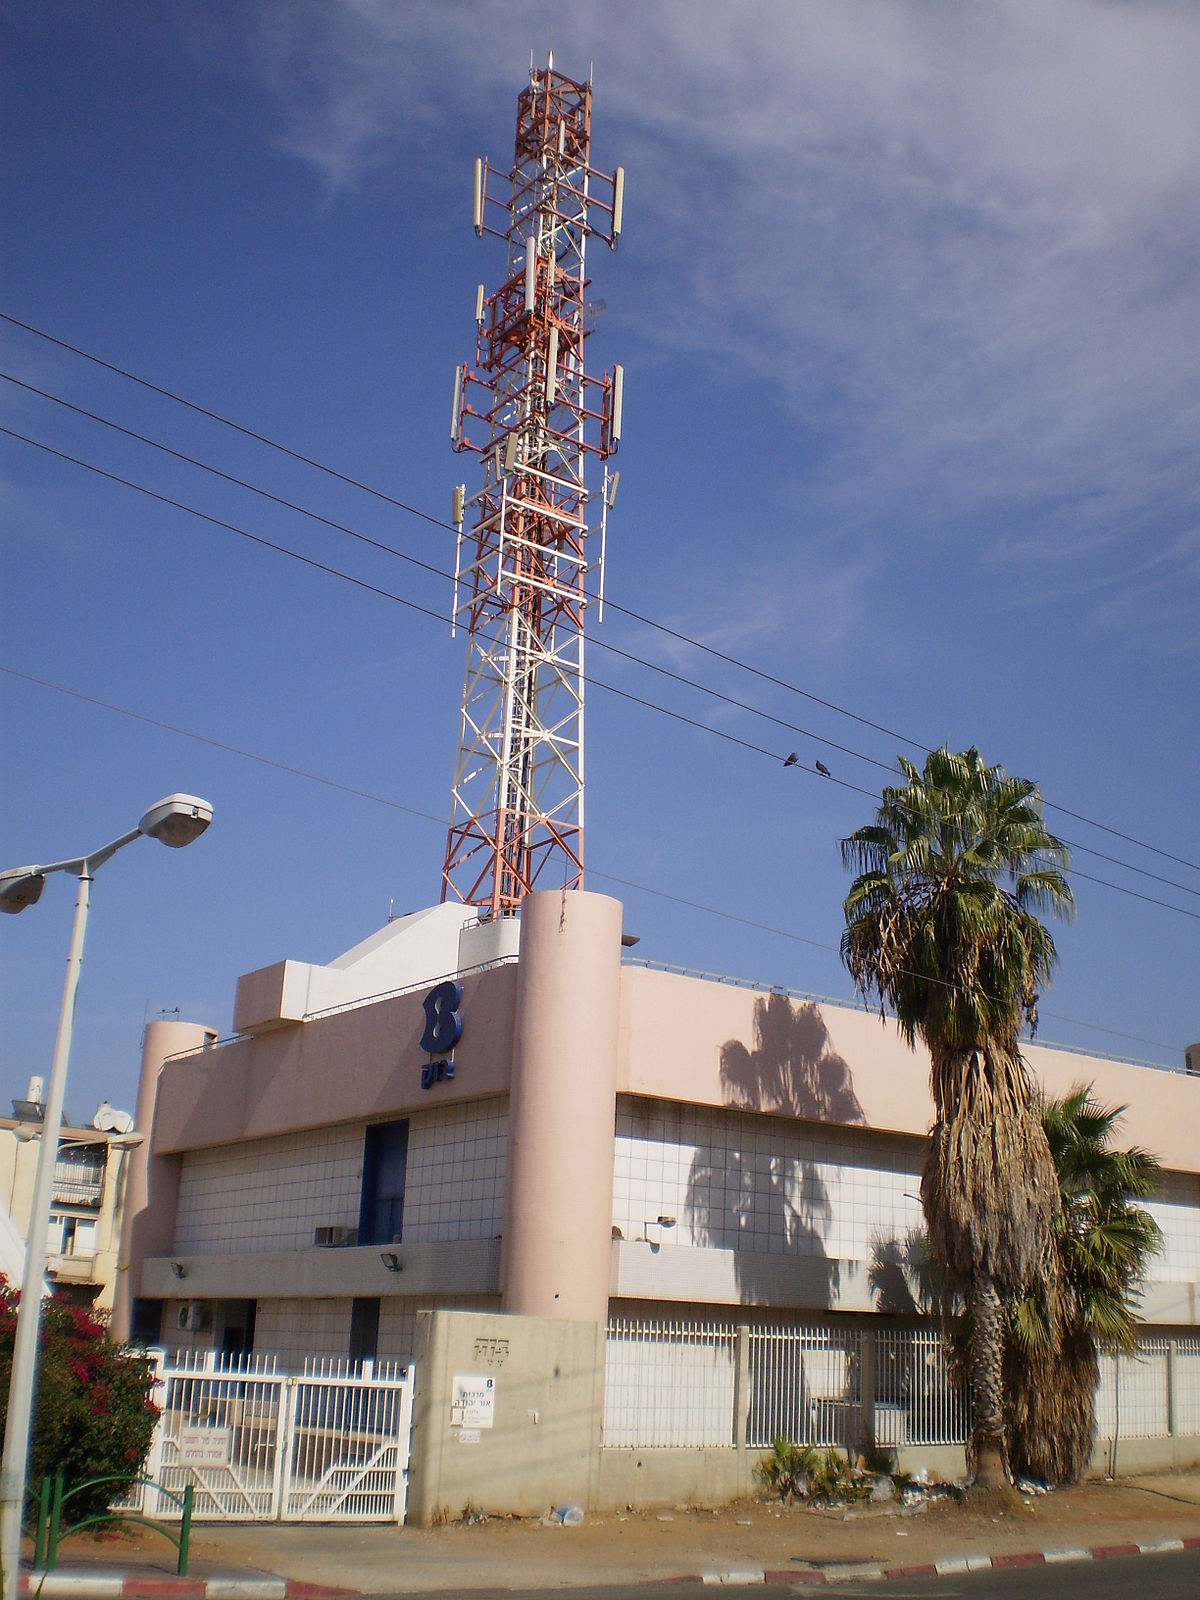 telecommunications in israel